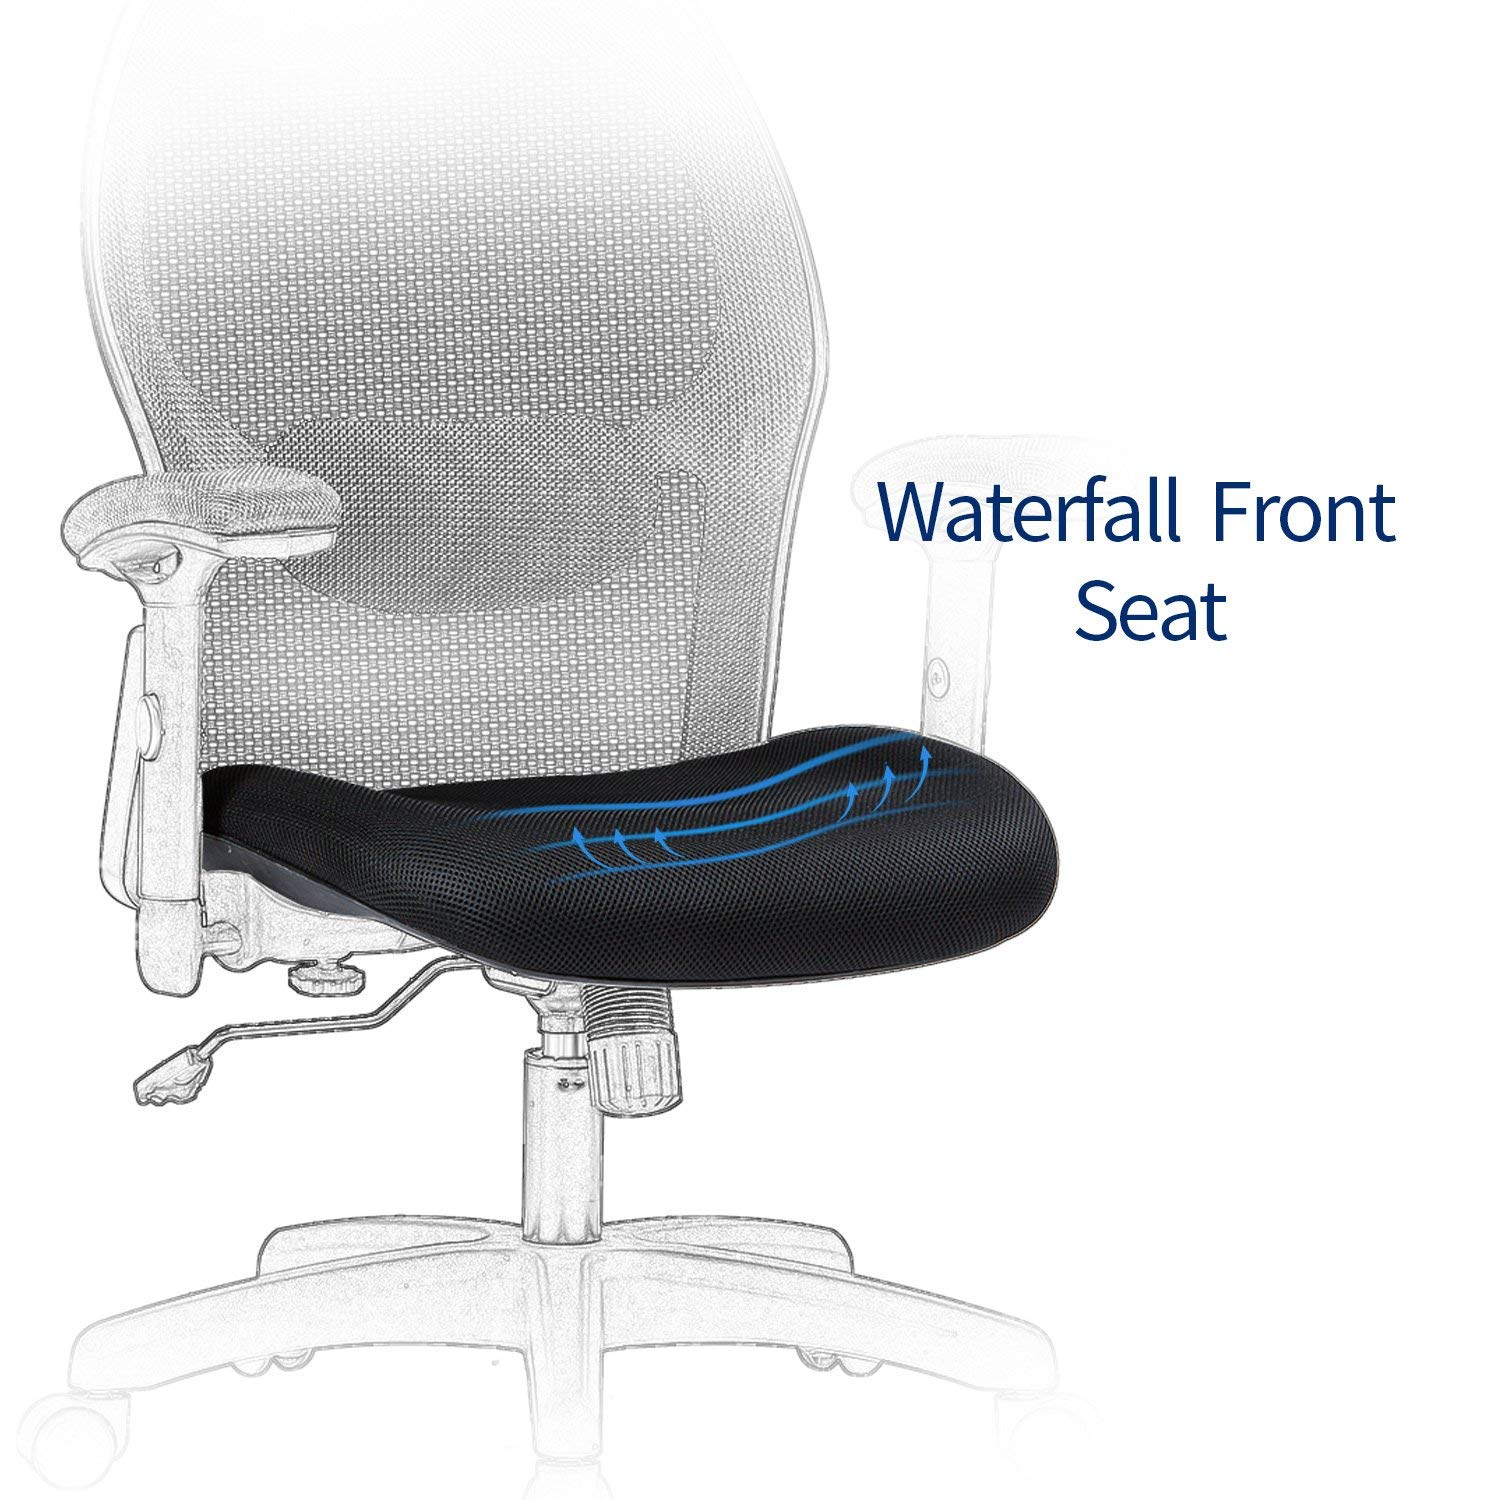 LIANFENG Ergonomic Office Chair, High Back Executive Swivel Computer Desk Chair with Adjustable Armrests and Headrest, Back Lumbar Support, Black by LIANFENG (Image #8)